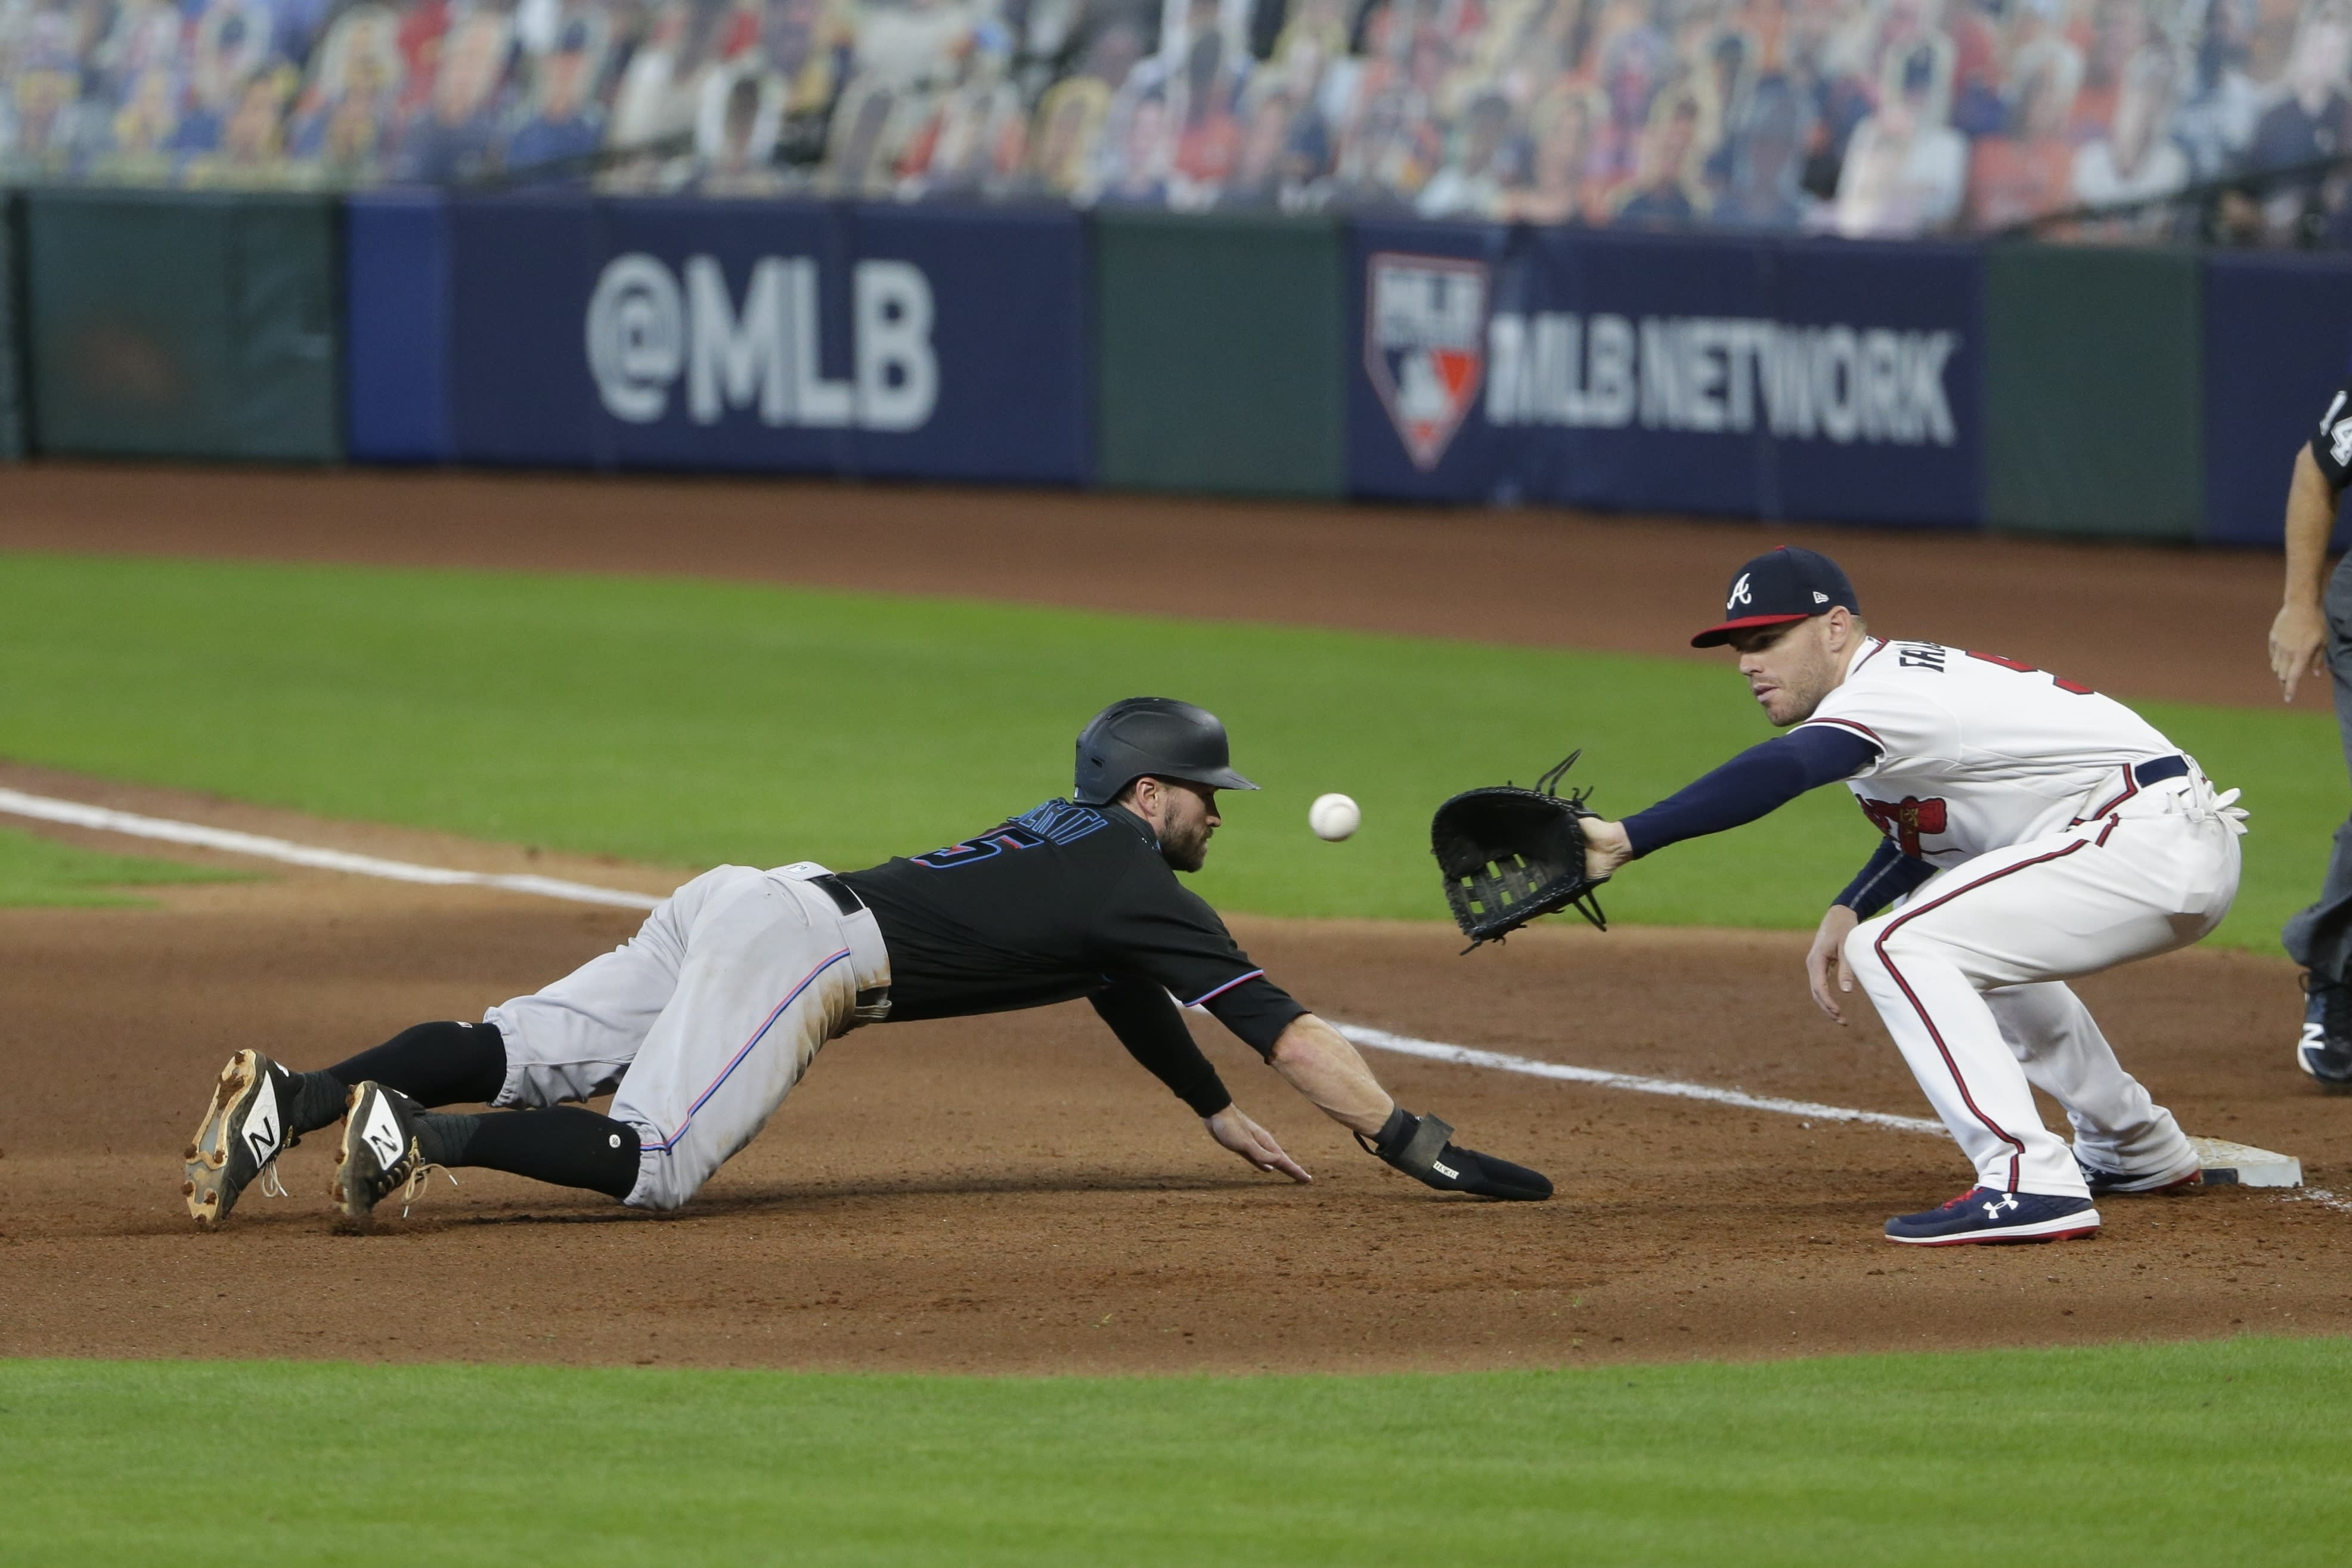 Miami Marlins' Jon Berti dives back to first base as Atlanta Braves first baseman Freddie Freeman attempt to tag him out during the eighth inning in Game 2 of a baseball National League Division Series Wednesday, Oct. 7, 2020, in Houston. (AP Photo/Michael Wyke)